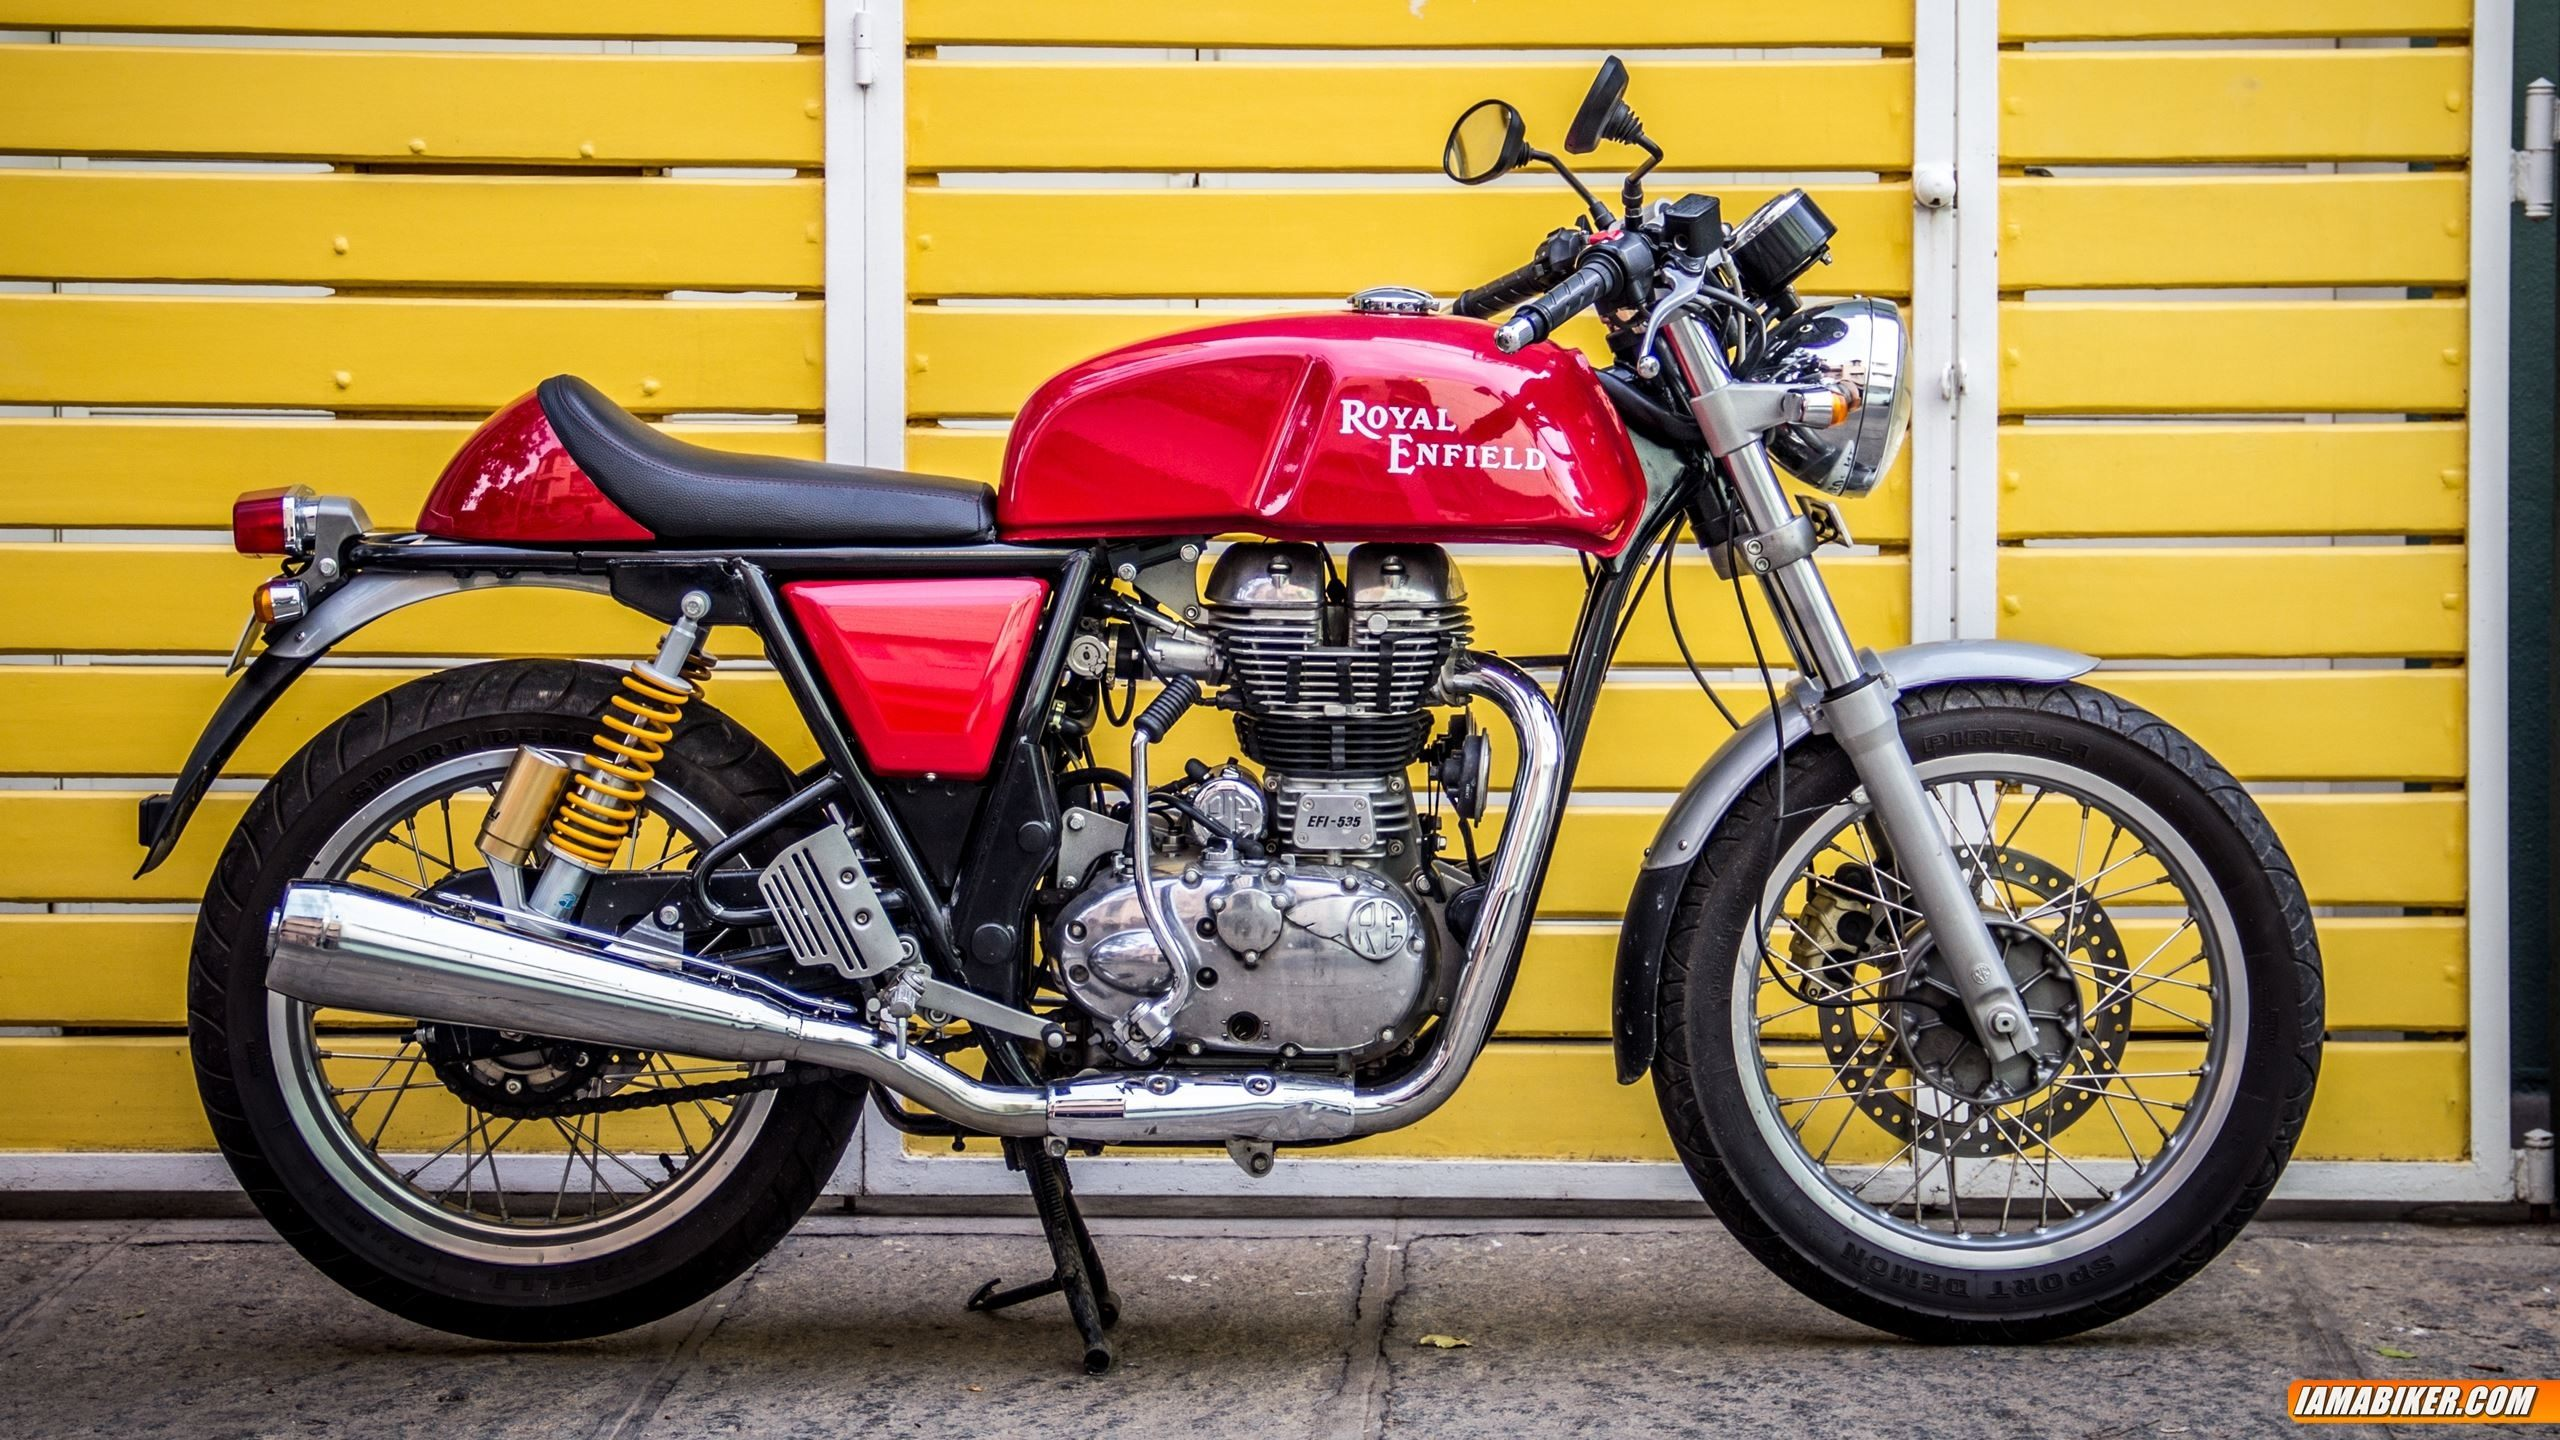 Hd wallpaper royal enfield - Royal Enfield Continental Gt